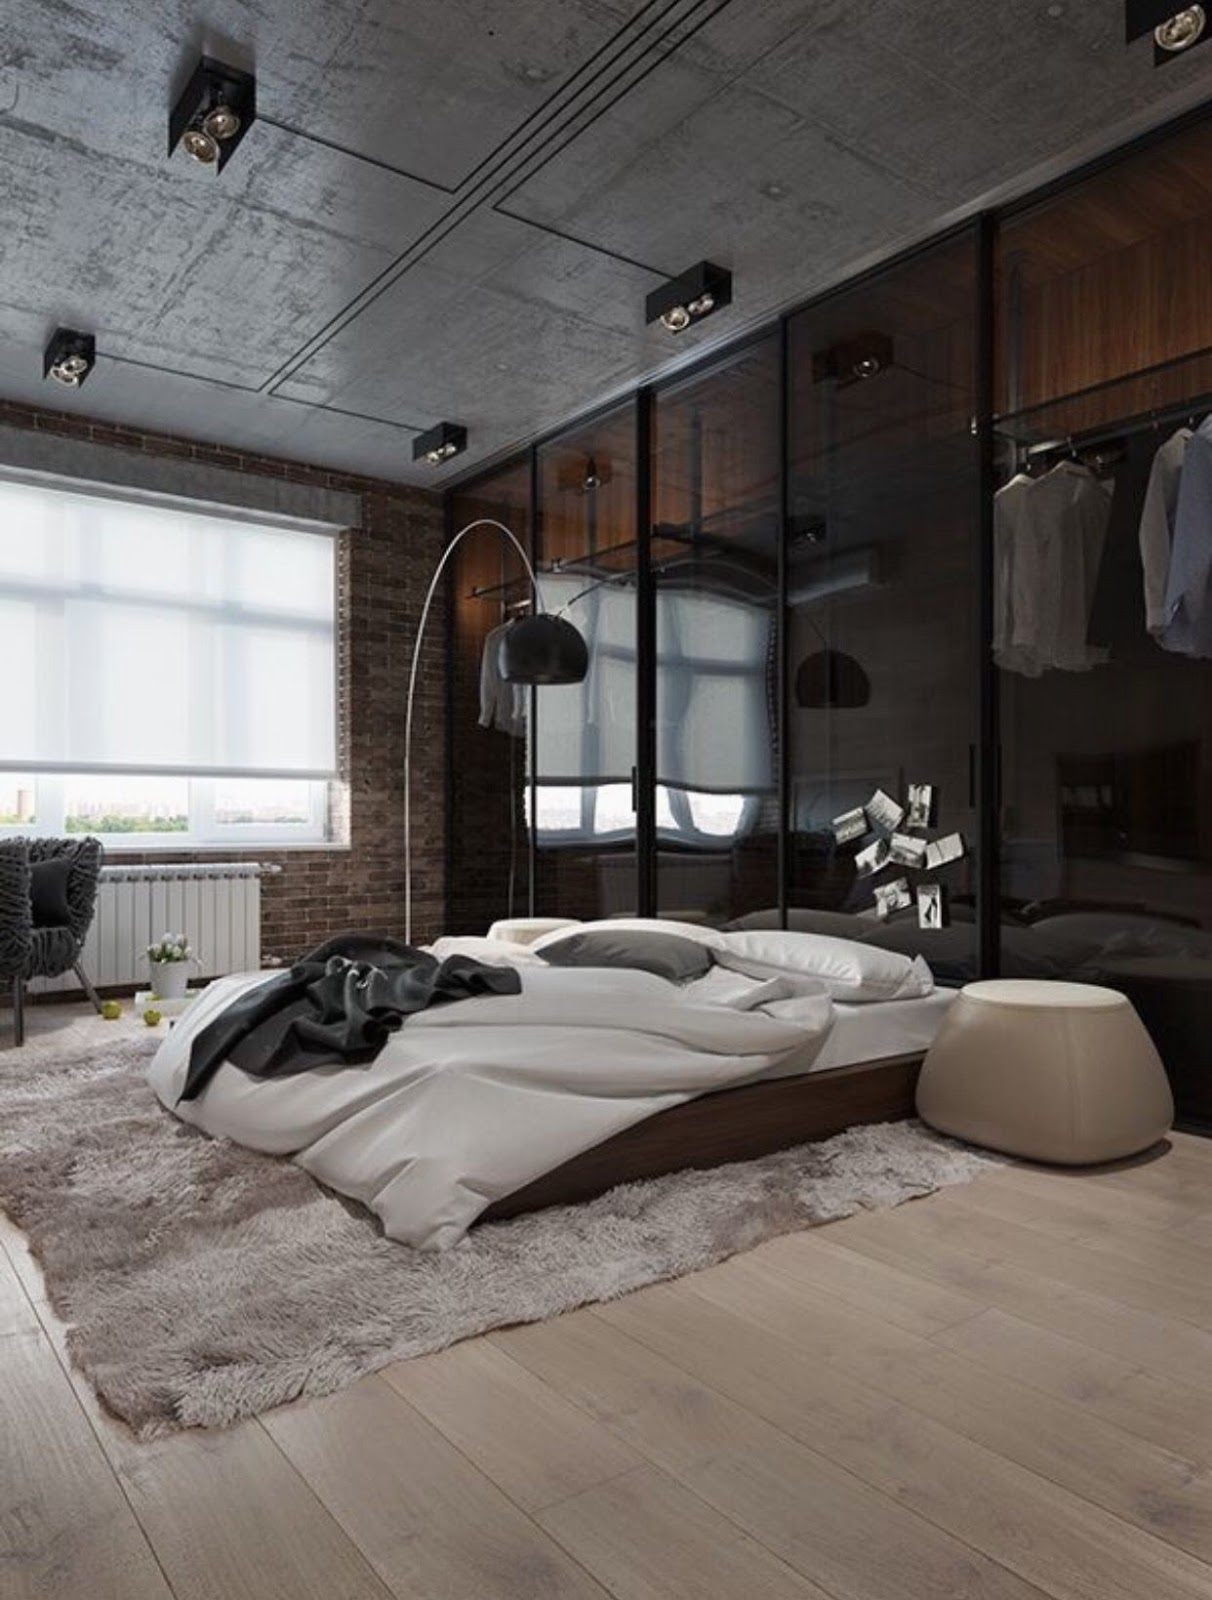 Best Male Living Space, Remodel, Design & Ideas